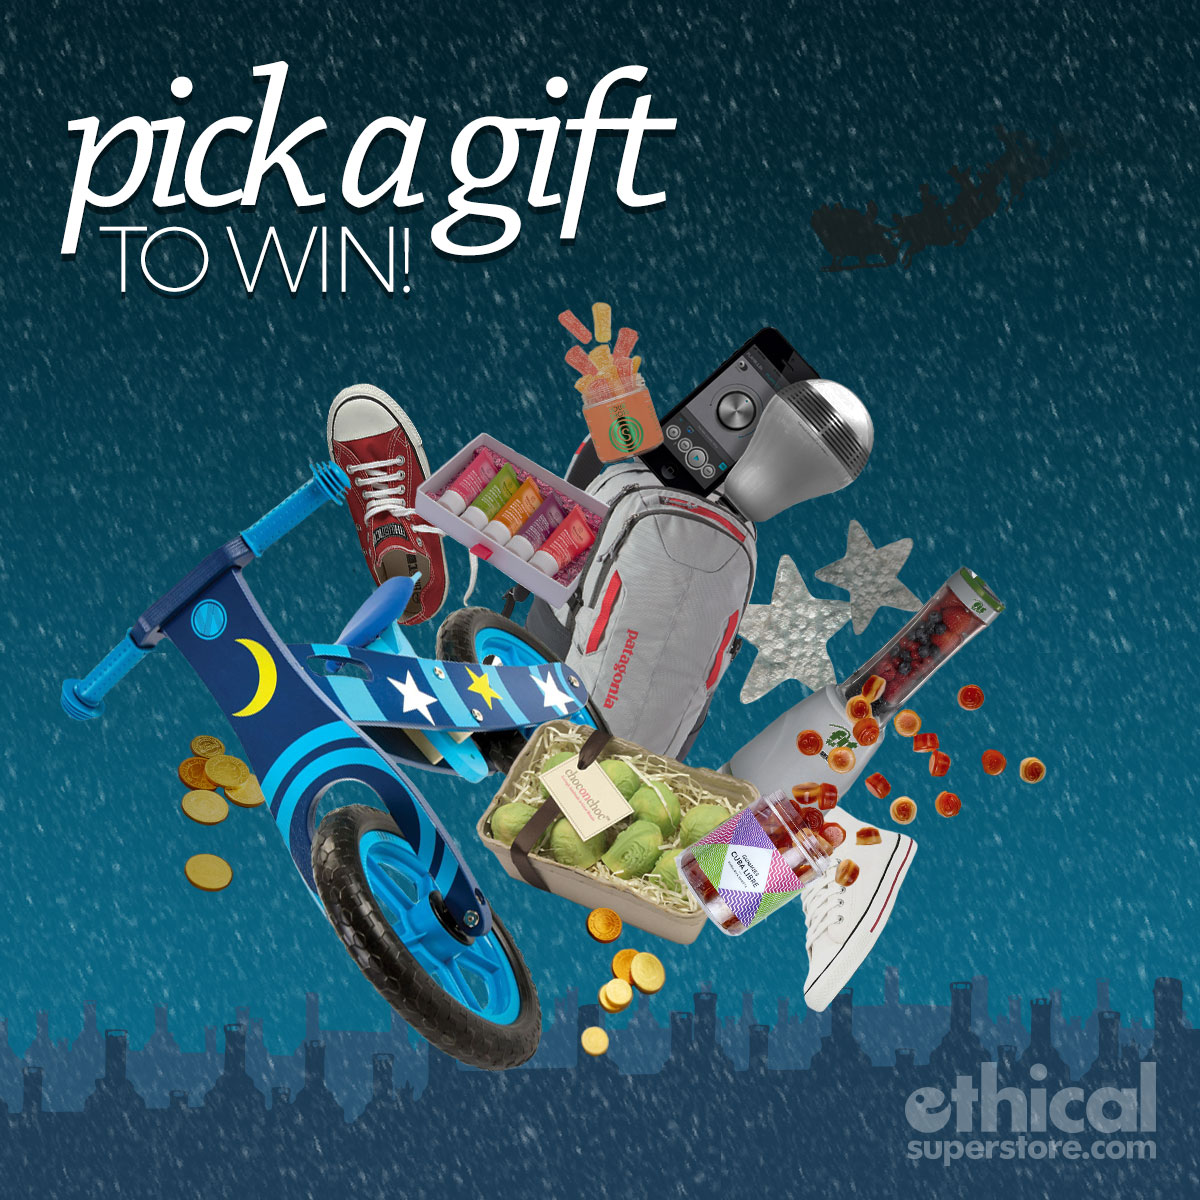 Win a Christmas Present from Ethical Superstore